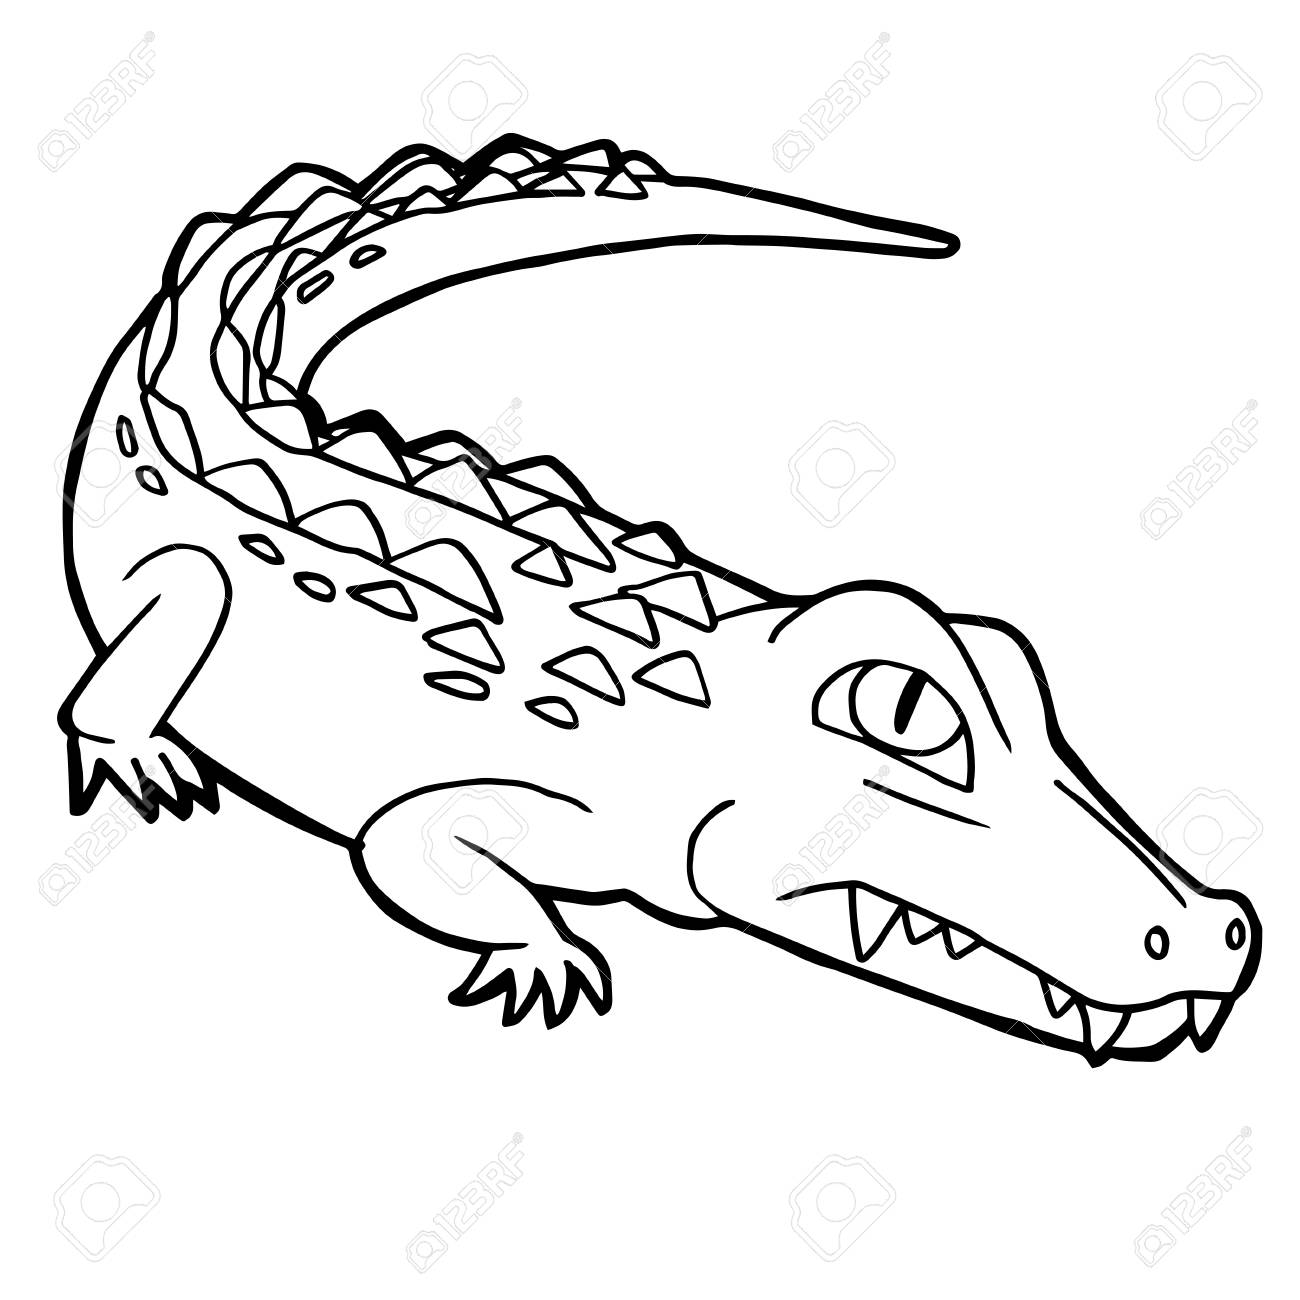 Cartoon Cute Crocodile Coloring Page Vector Illustration Royalty ...